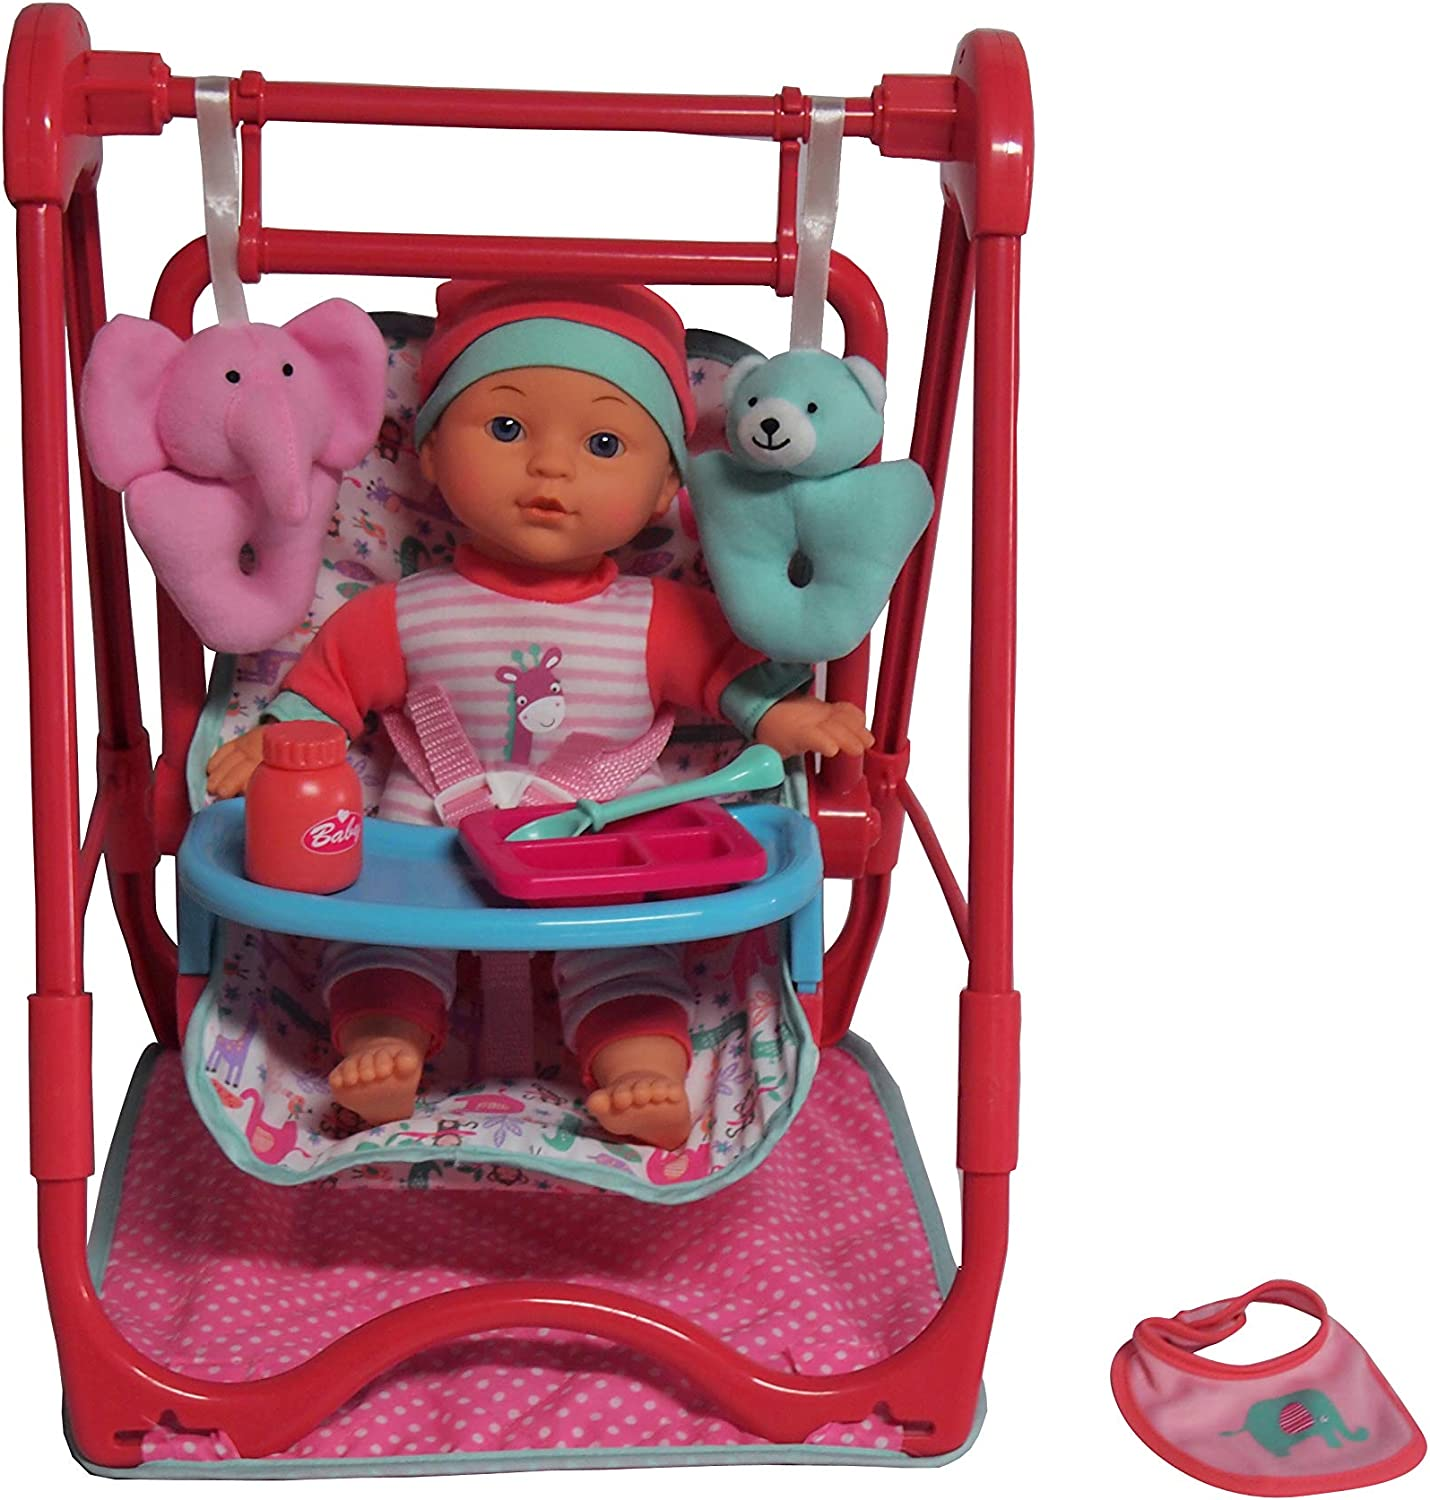 Amazon Com Dream Collection 12 Baby Doll 4 In 1 High Chair Play